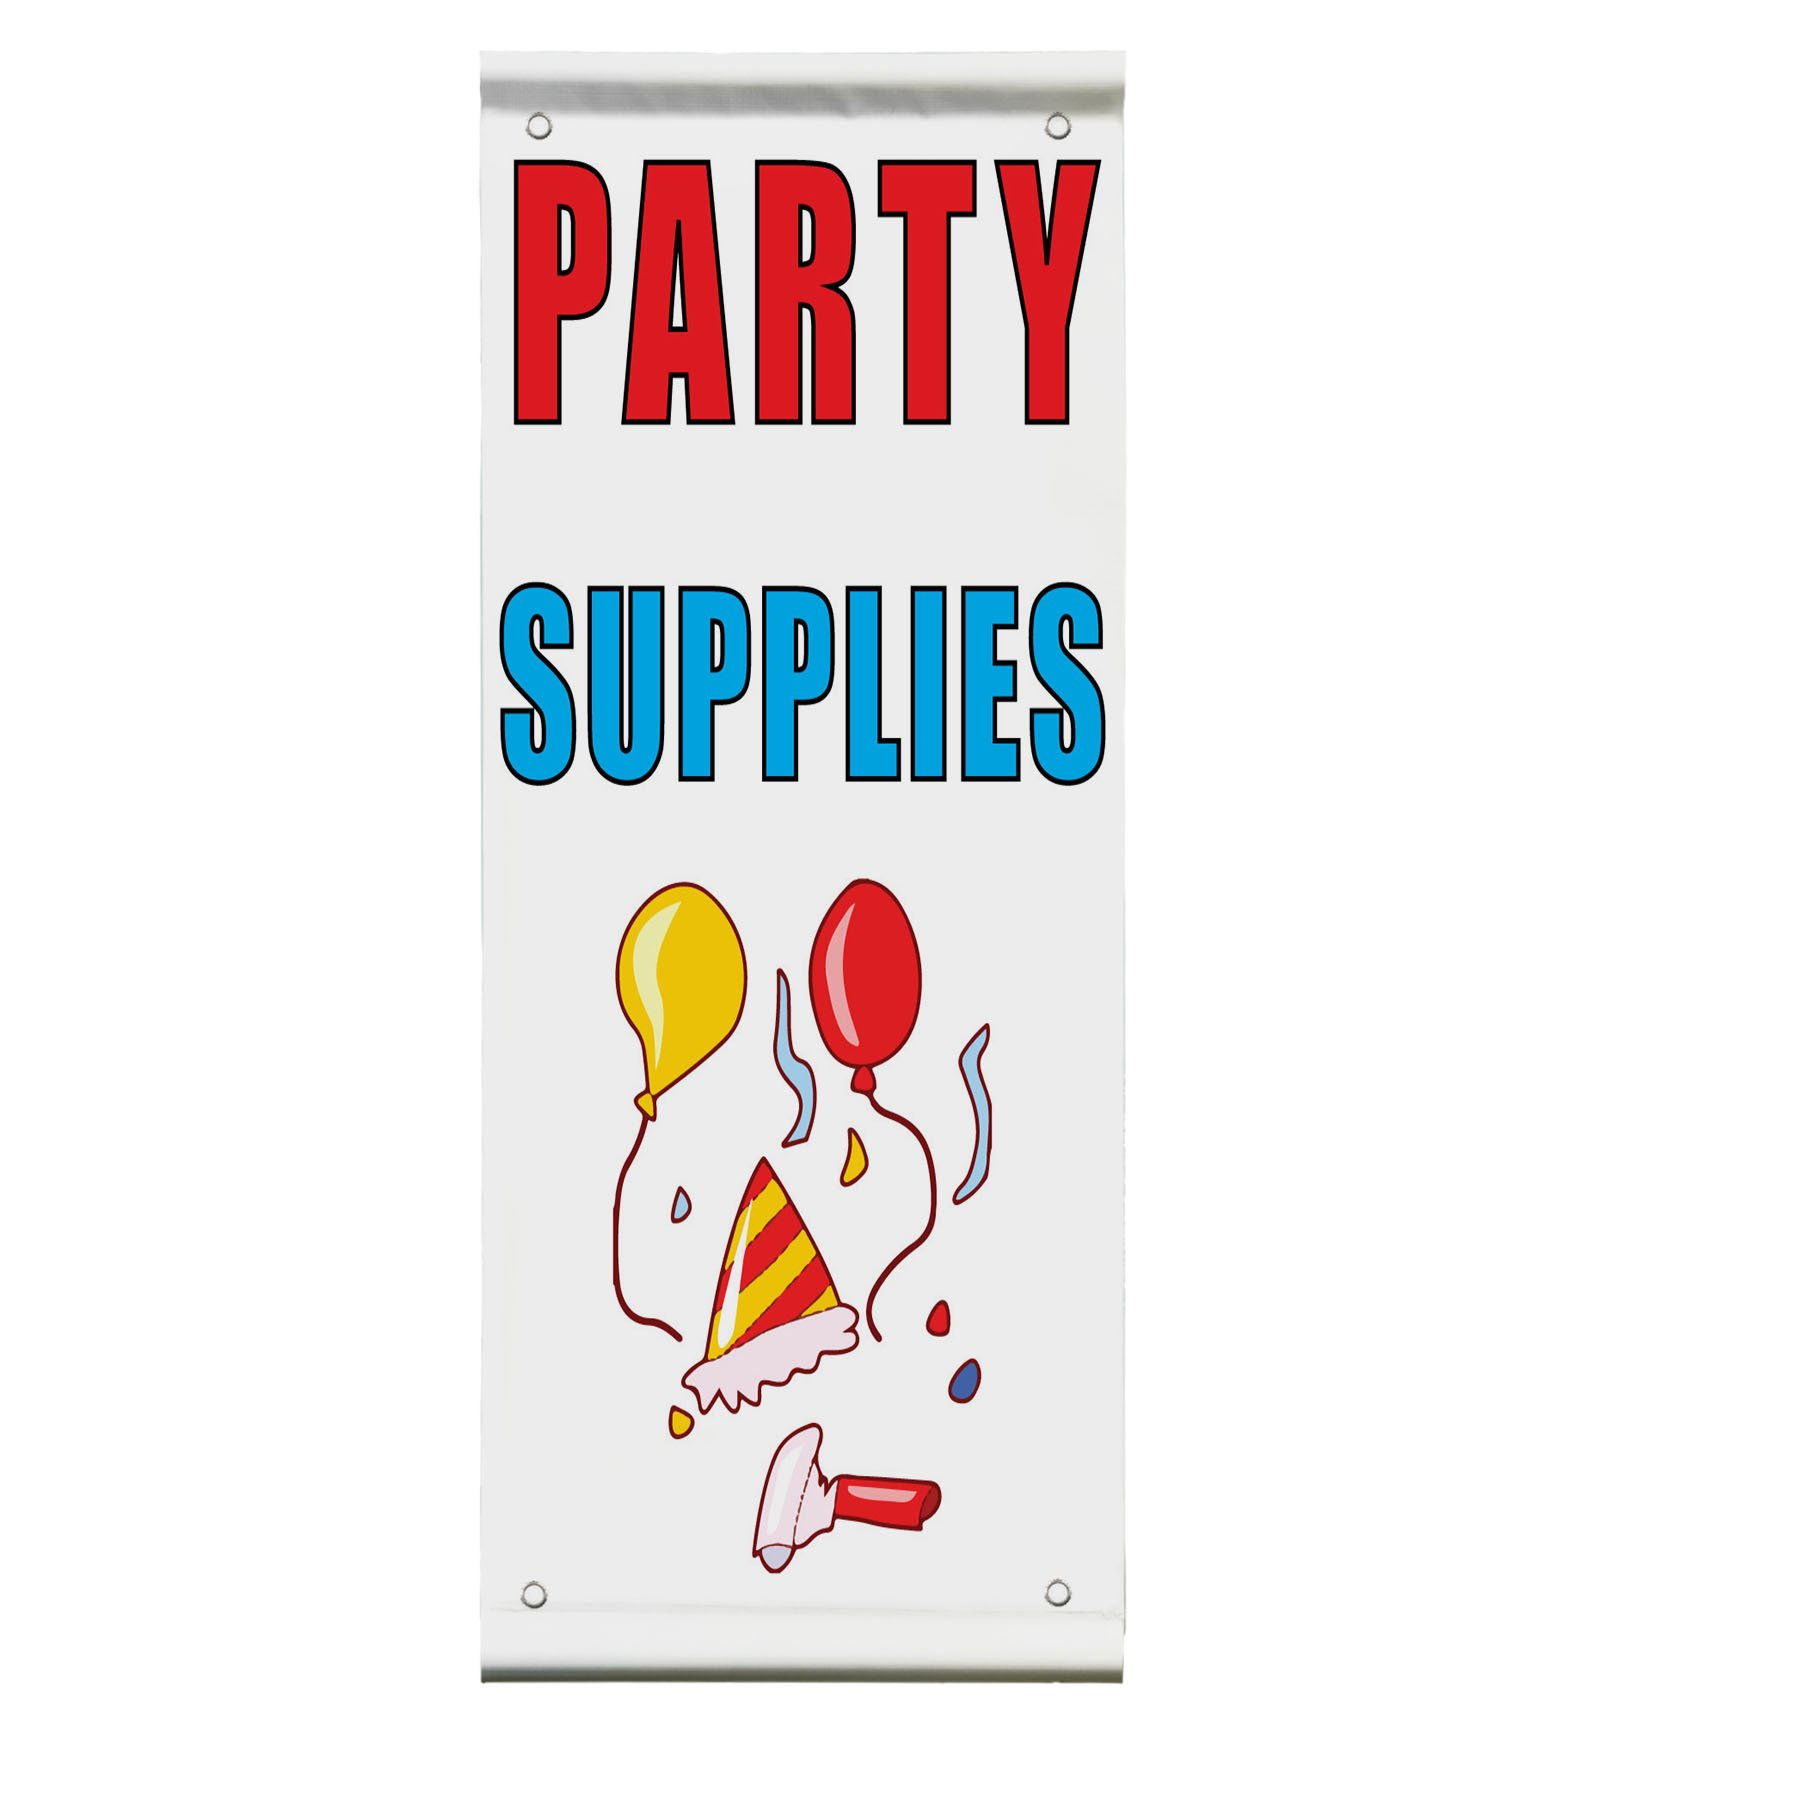 Party Supplies Double Sided Vertical Pole Banner Sign 24 in x 48 in w/ Pole Bracket